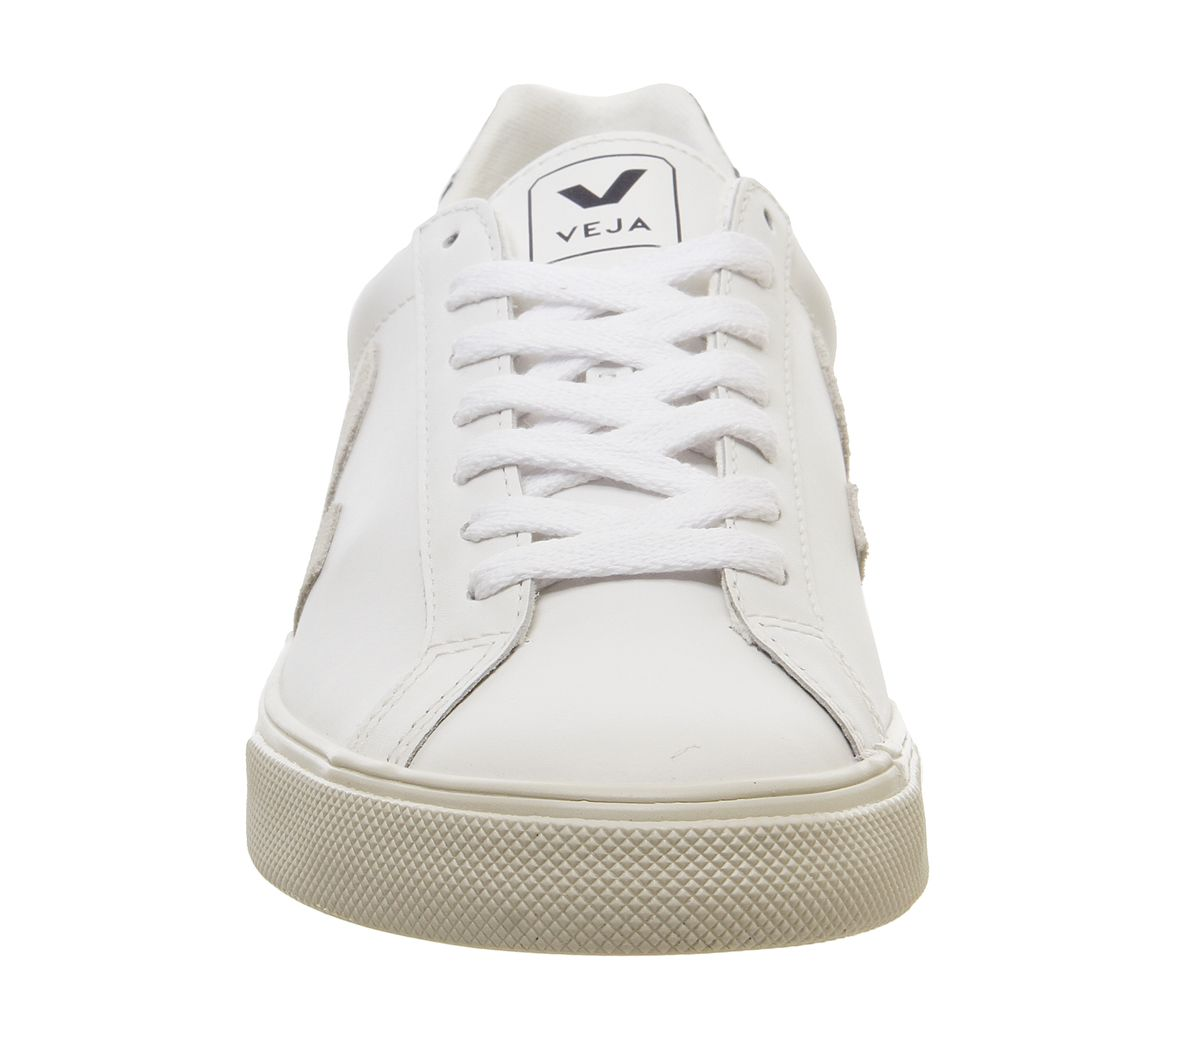 7c84577640 Double tap to zoom into the image. Veja, Esplar Trainers, White Natural  Nautico ...